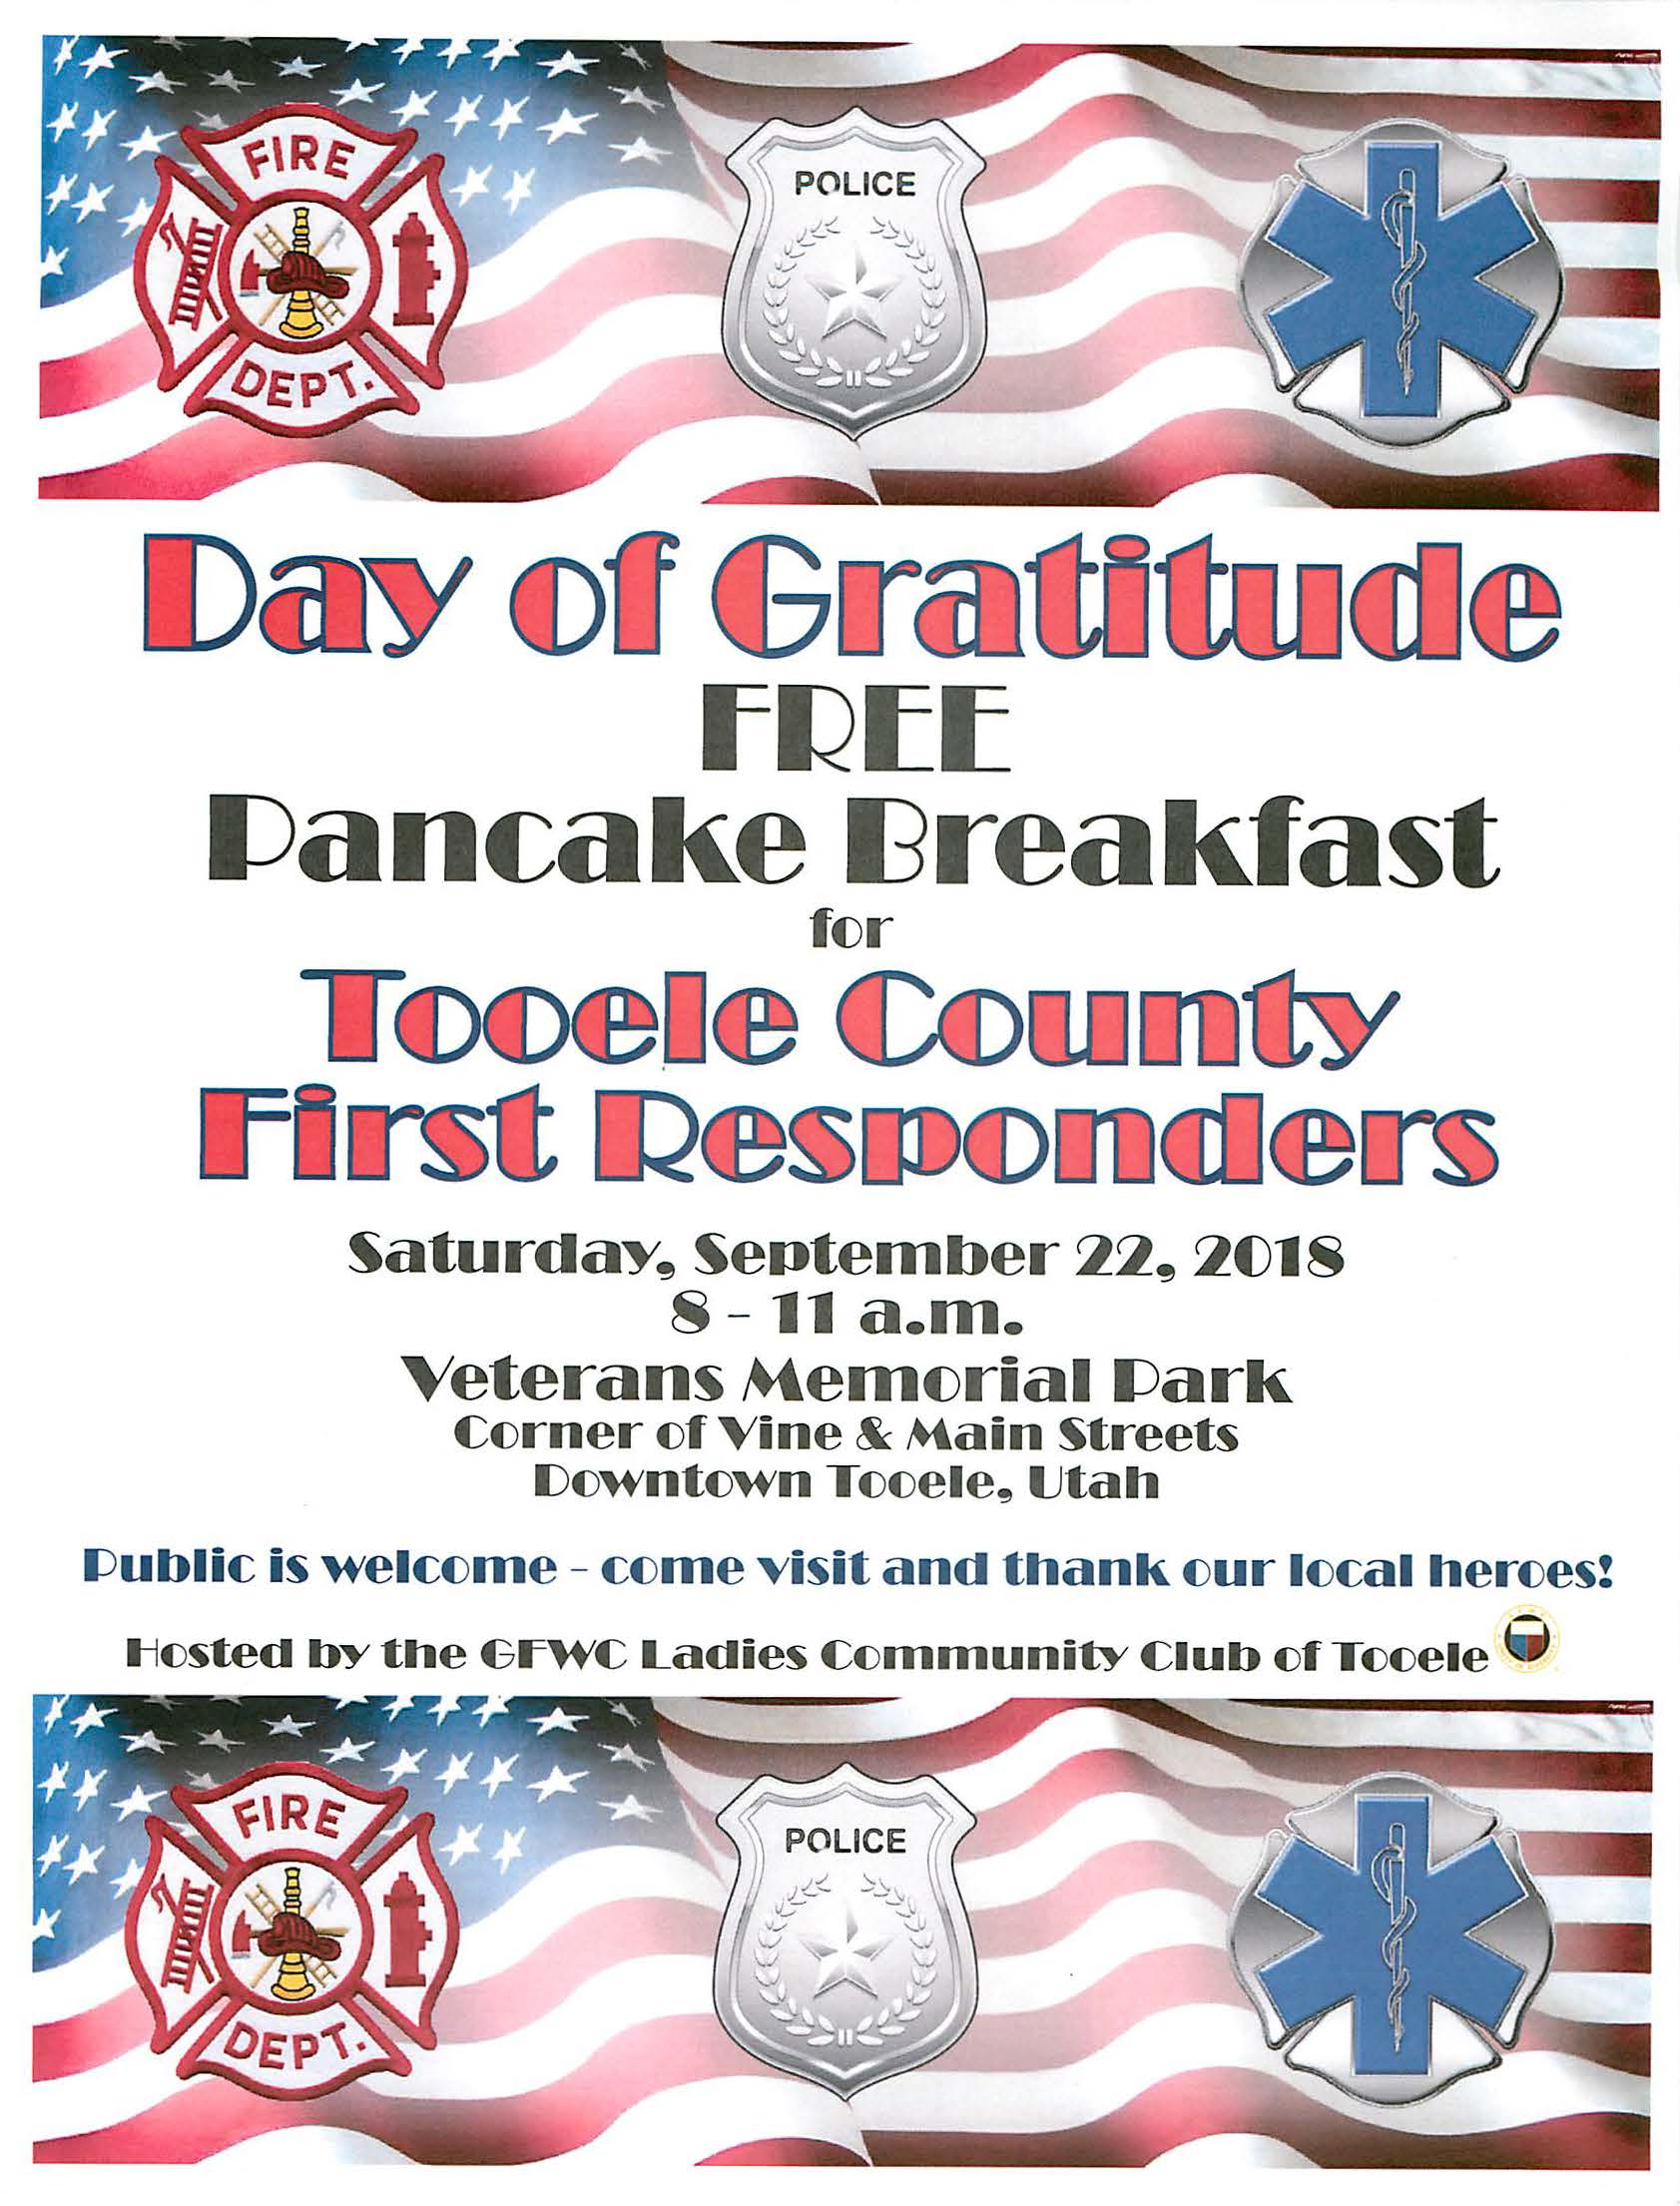 Day of Gratitude for Tooele County First Responders @ Veterans Memorial Park | Tooele | Utah | United States